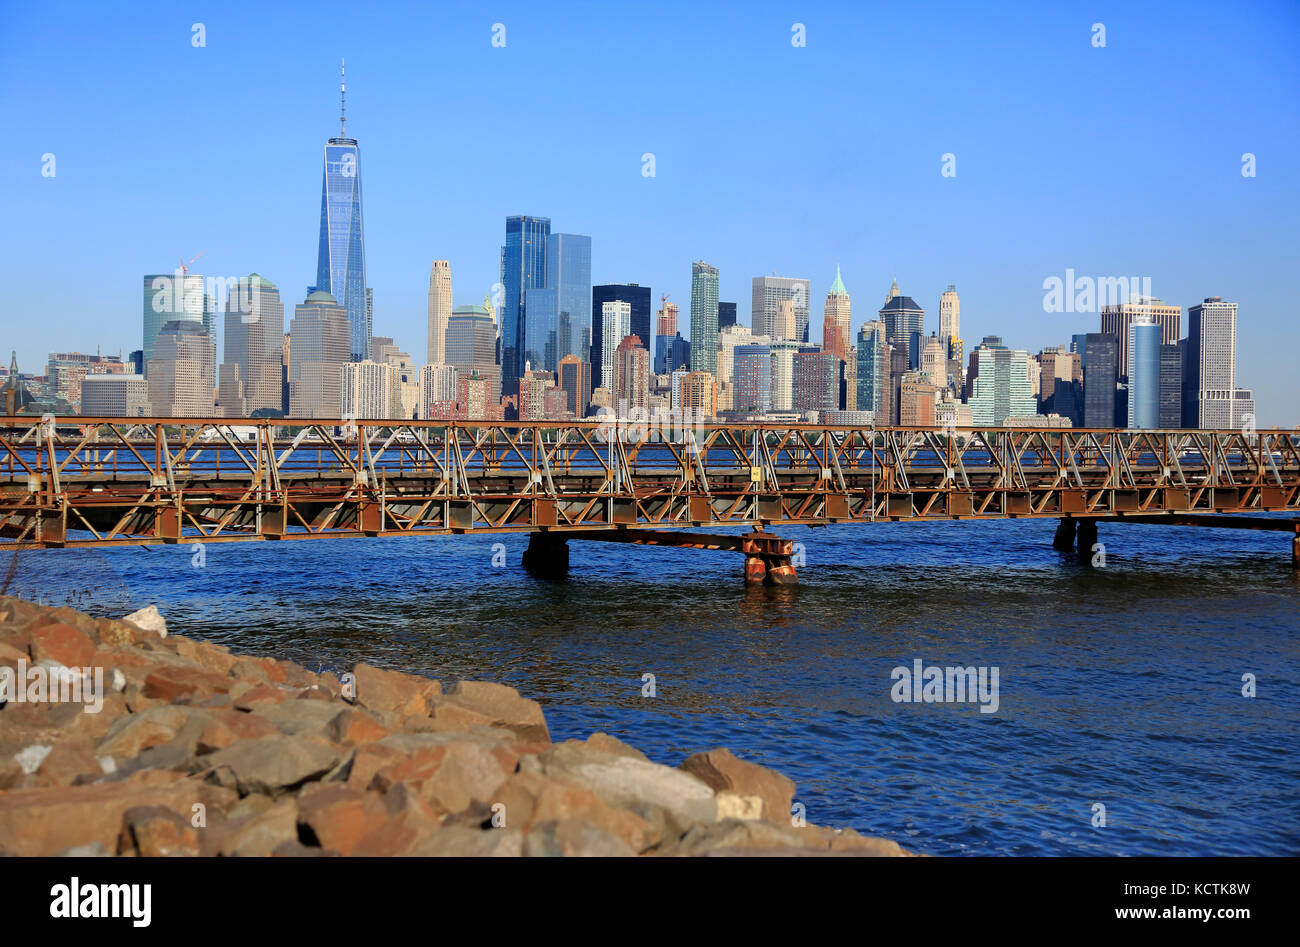 The skyline of Lower Manhattan financial district with foot bridge connect Ellis Island and Liberty State Park over - Stock Image